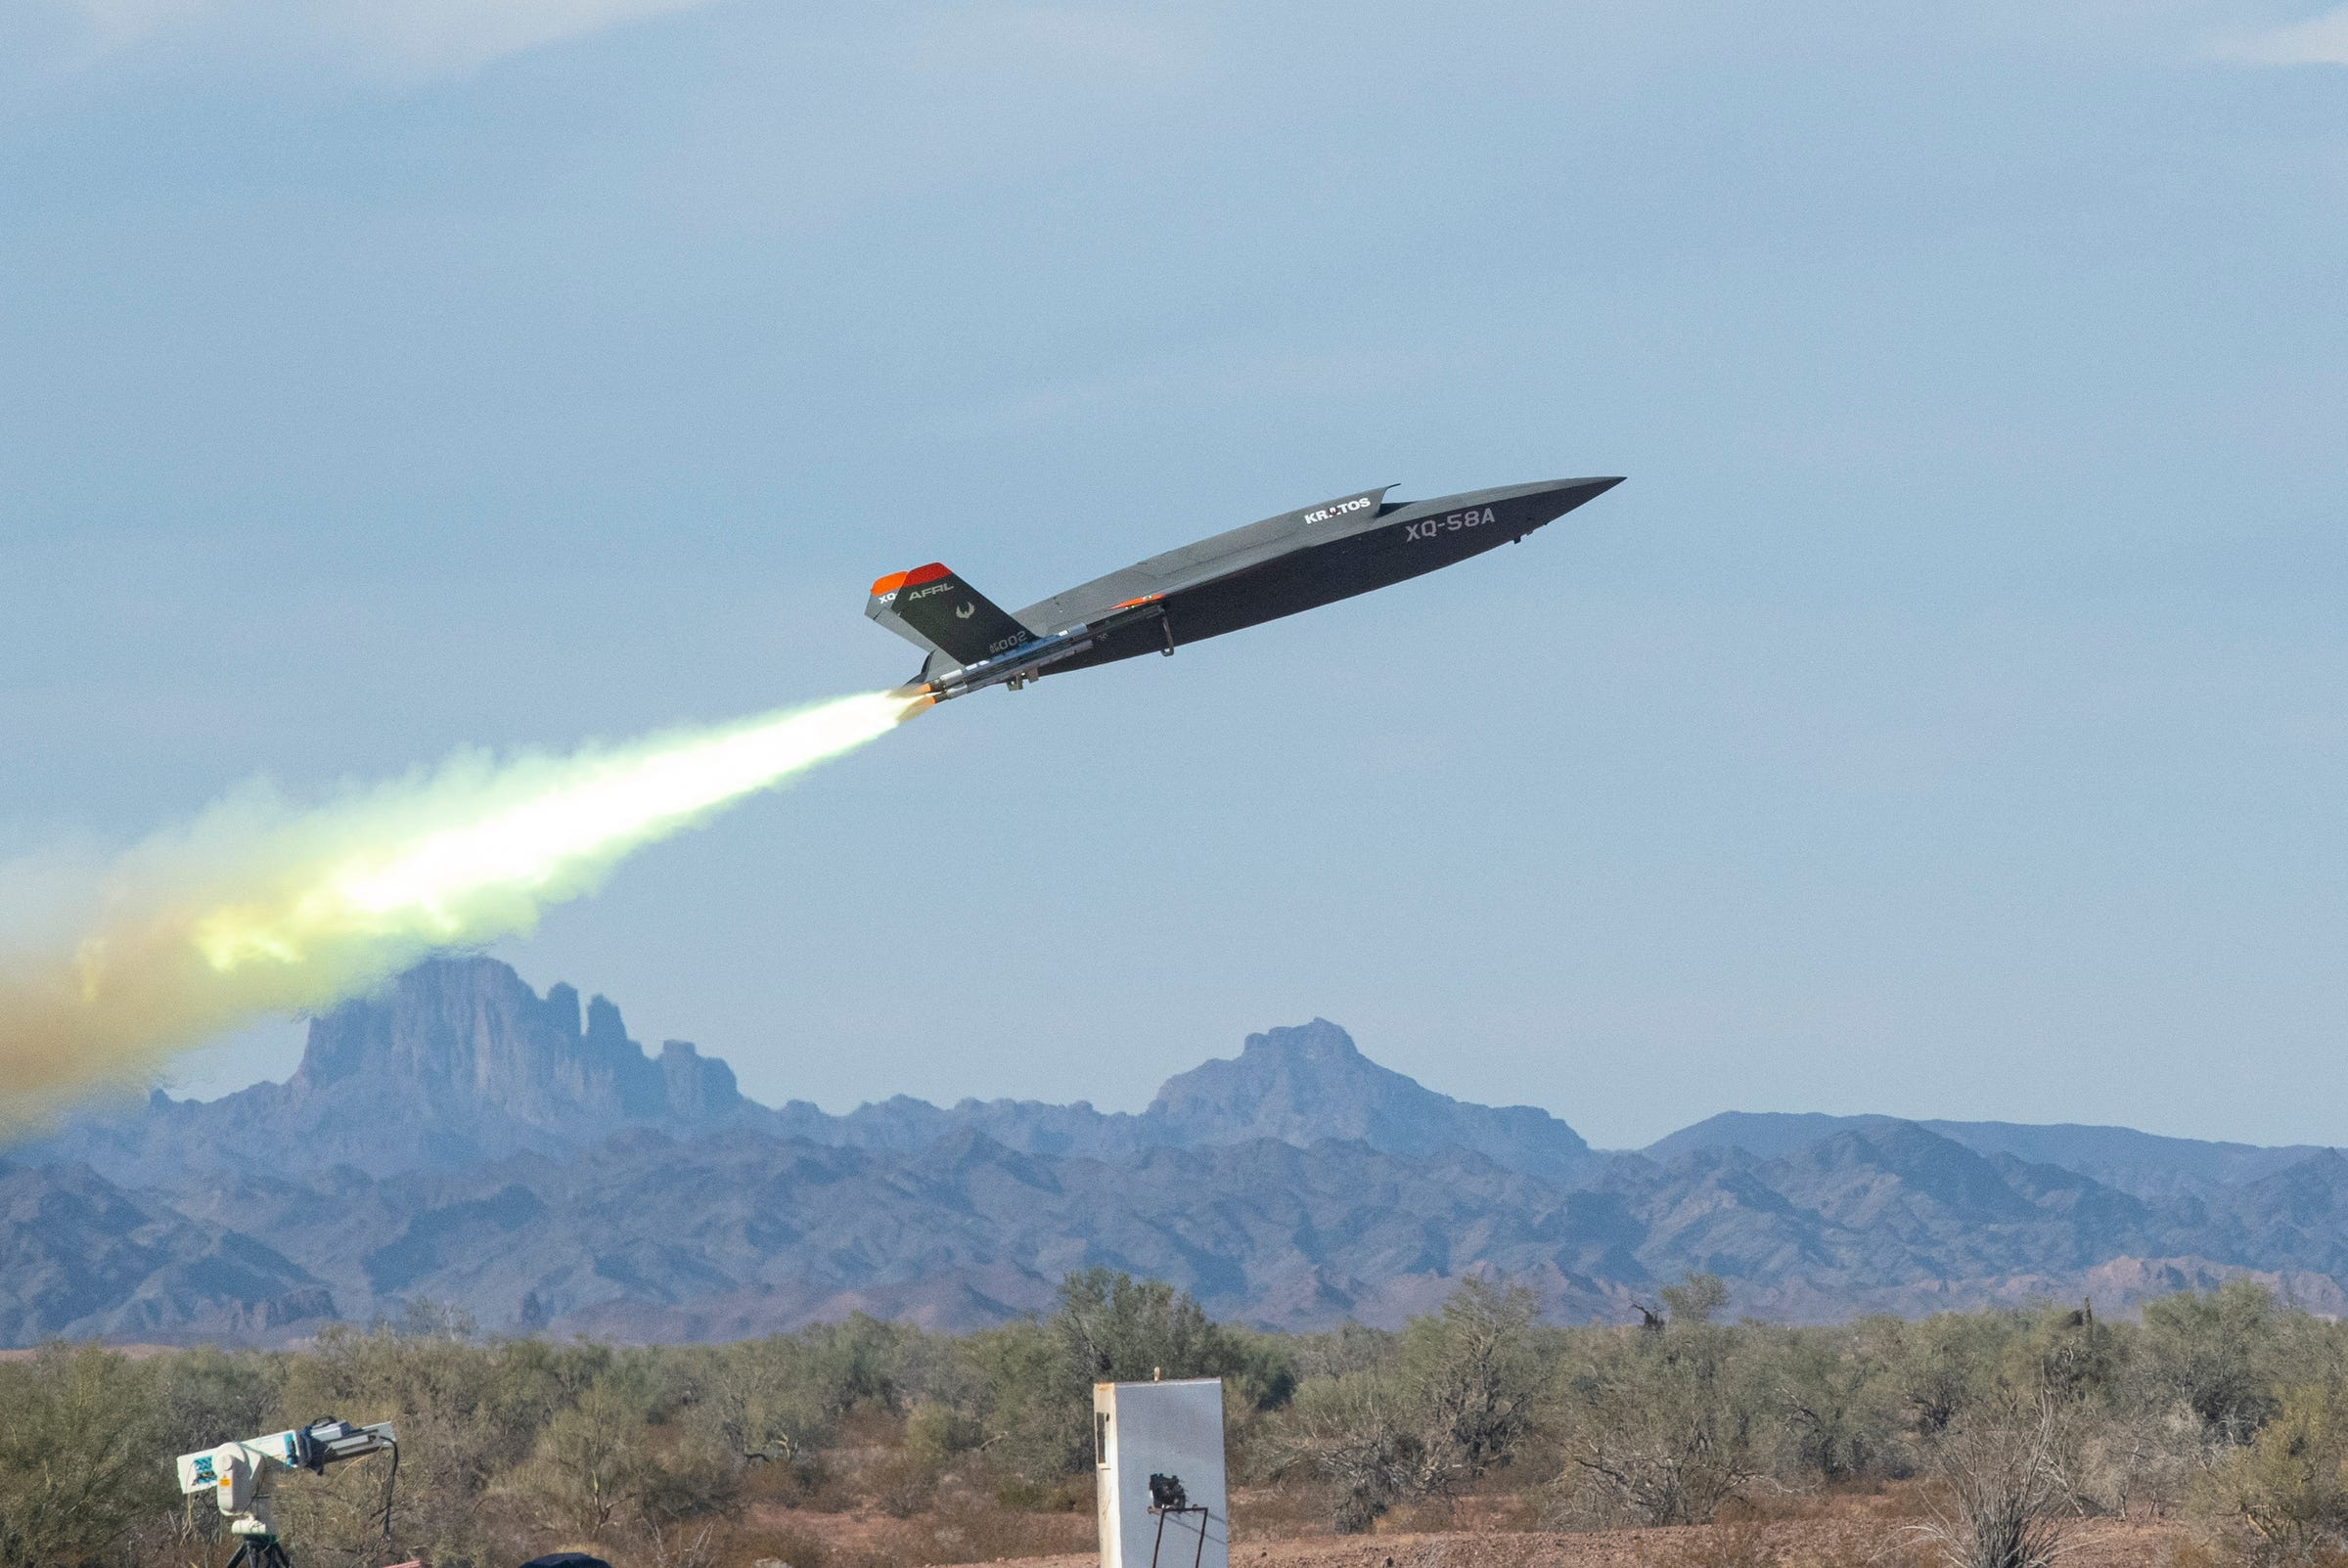 An XQ-58A Valkyrie low-cost unmanned aerial vehicle launches at the U.S. Army Yuma Proving Ground, Ariz., Dec. 9, 2020